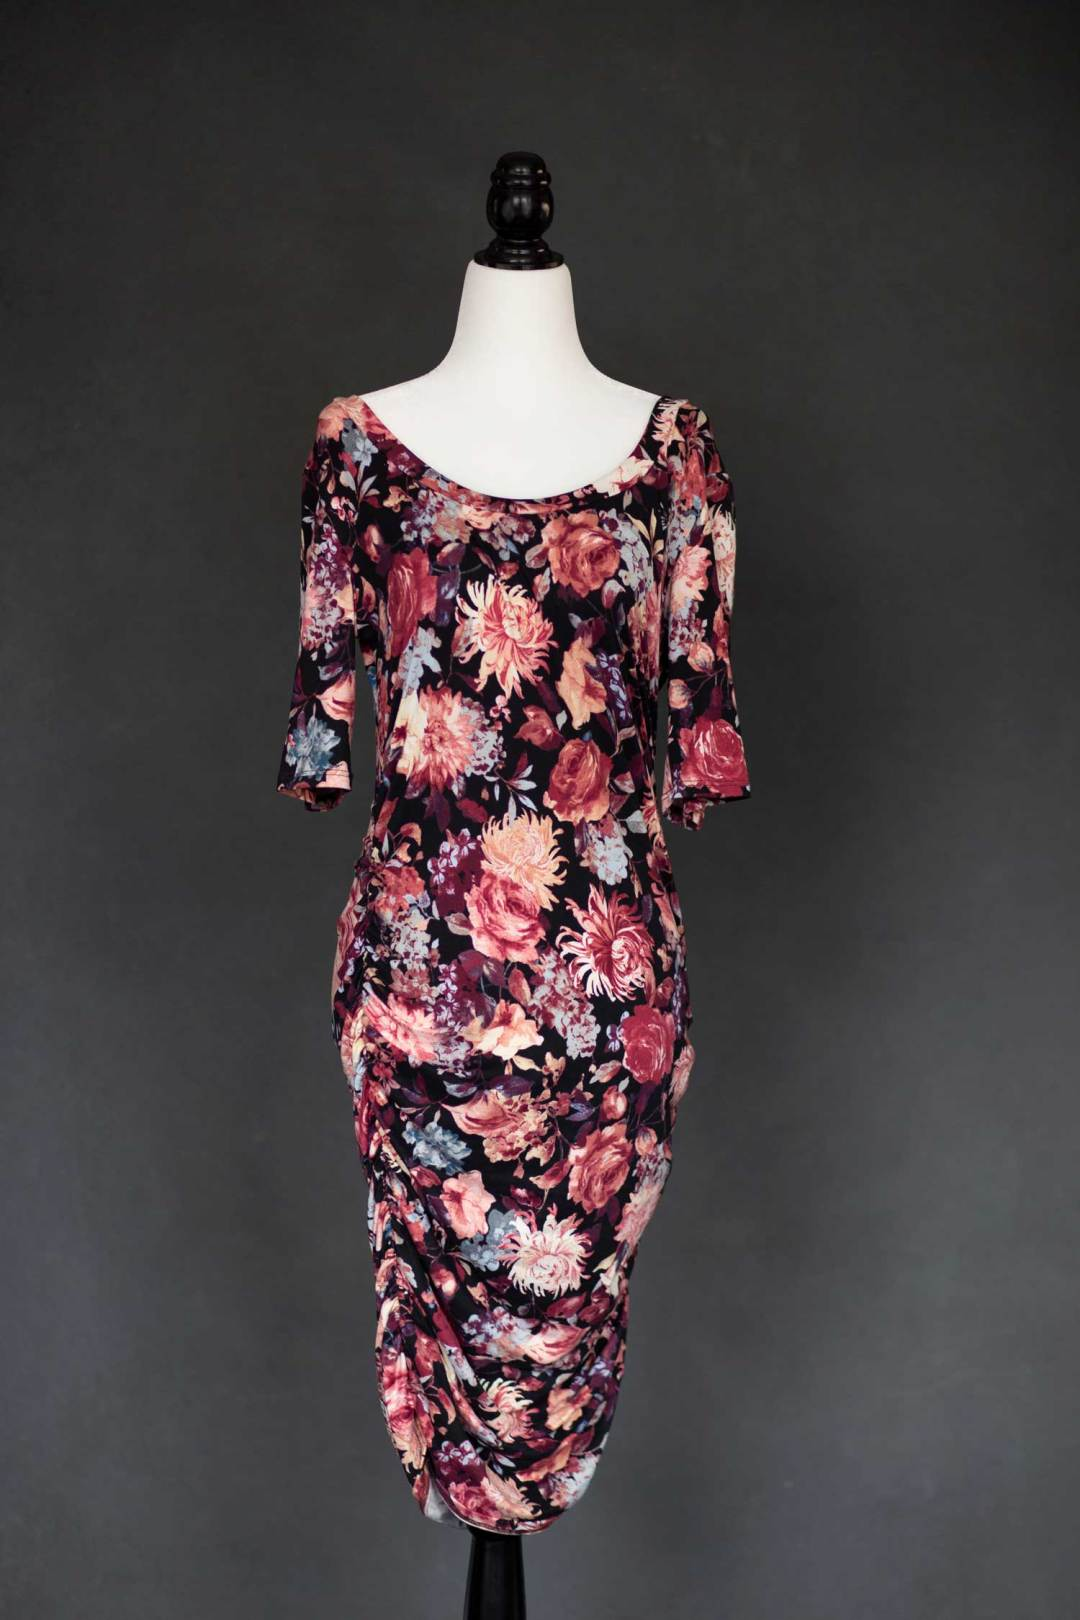 Pink and Black floral maternity dress